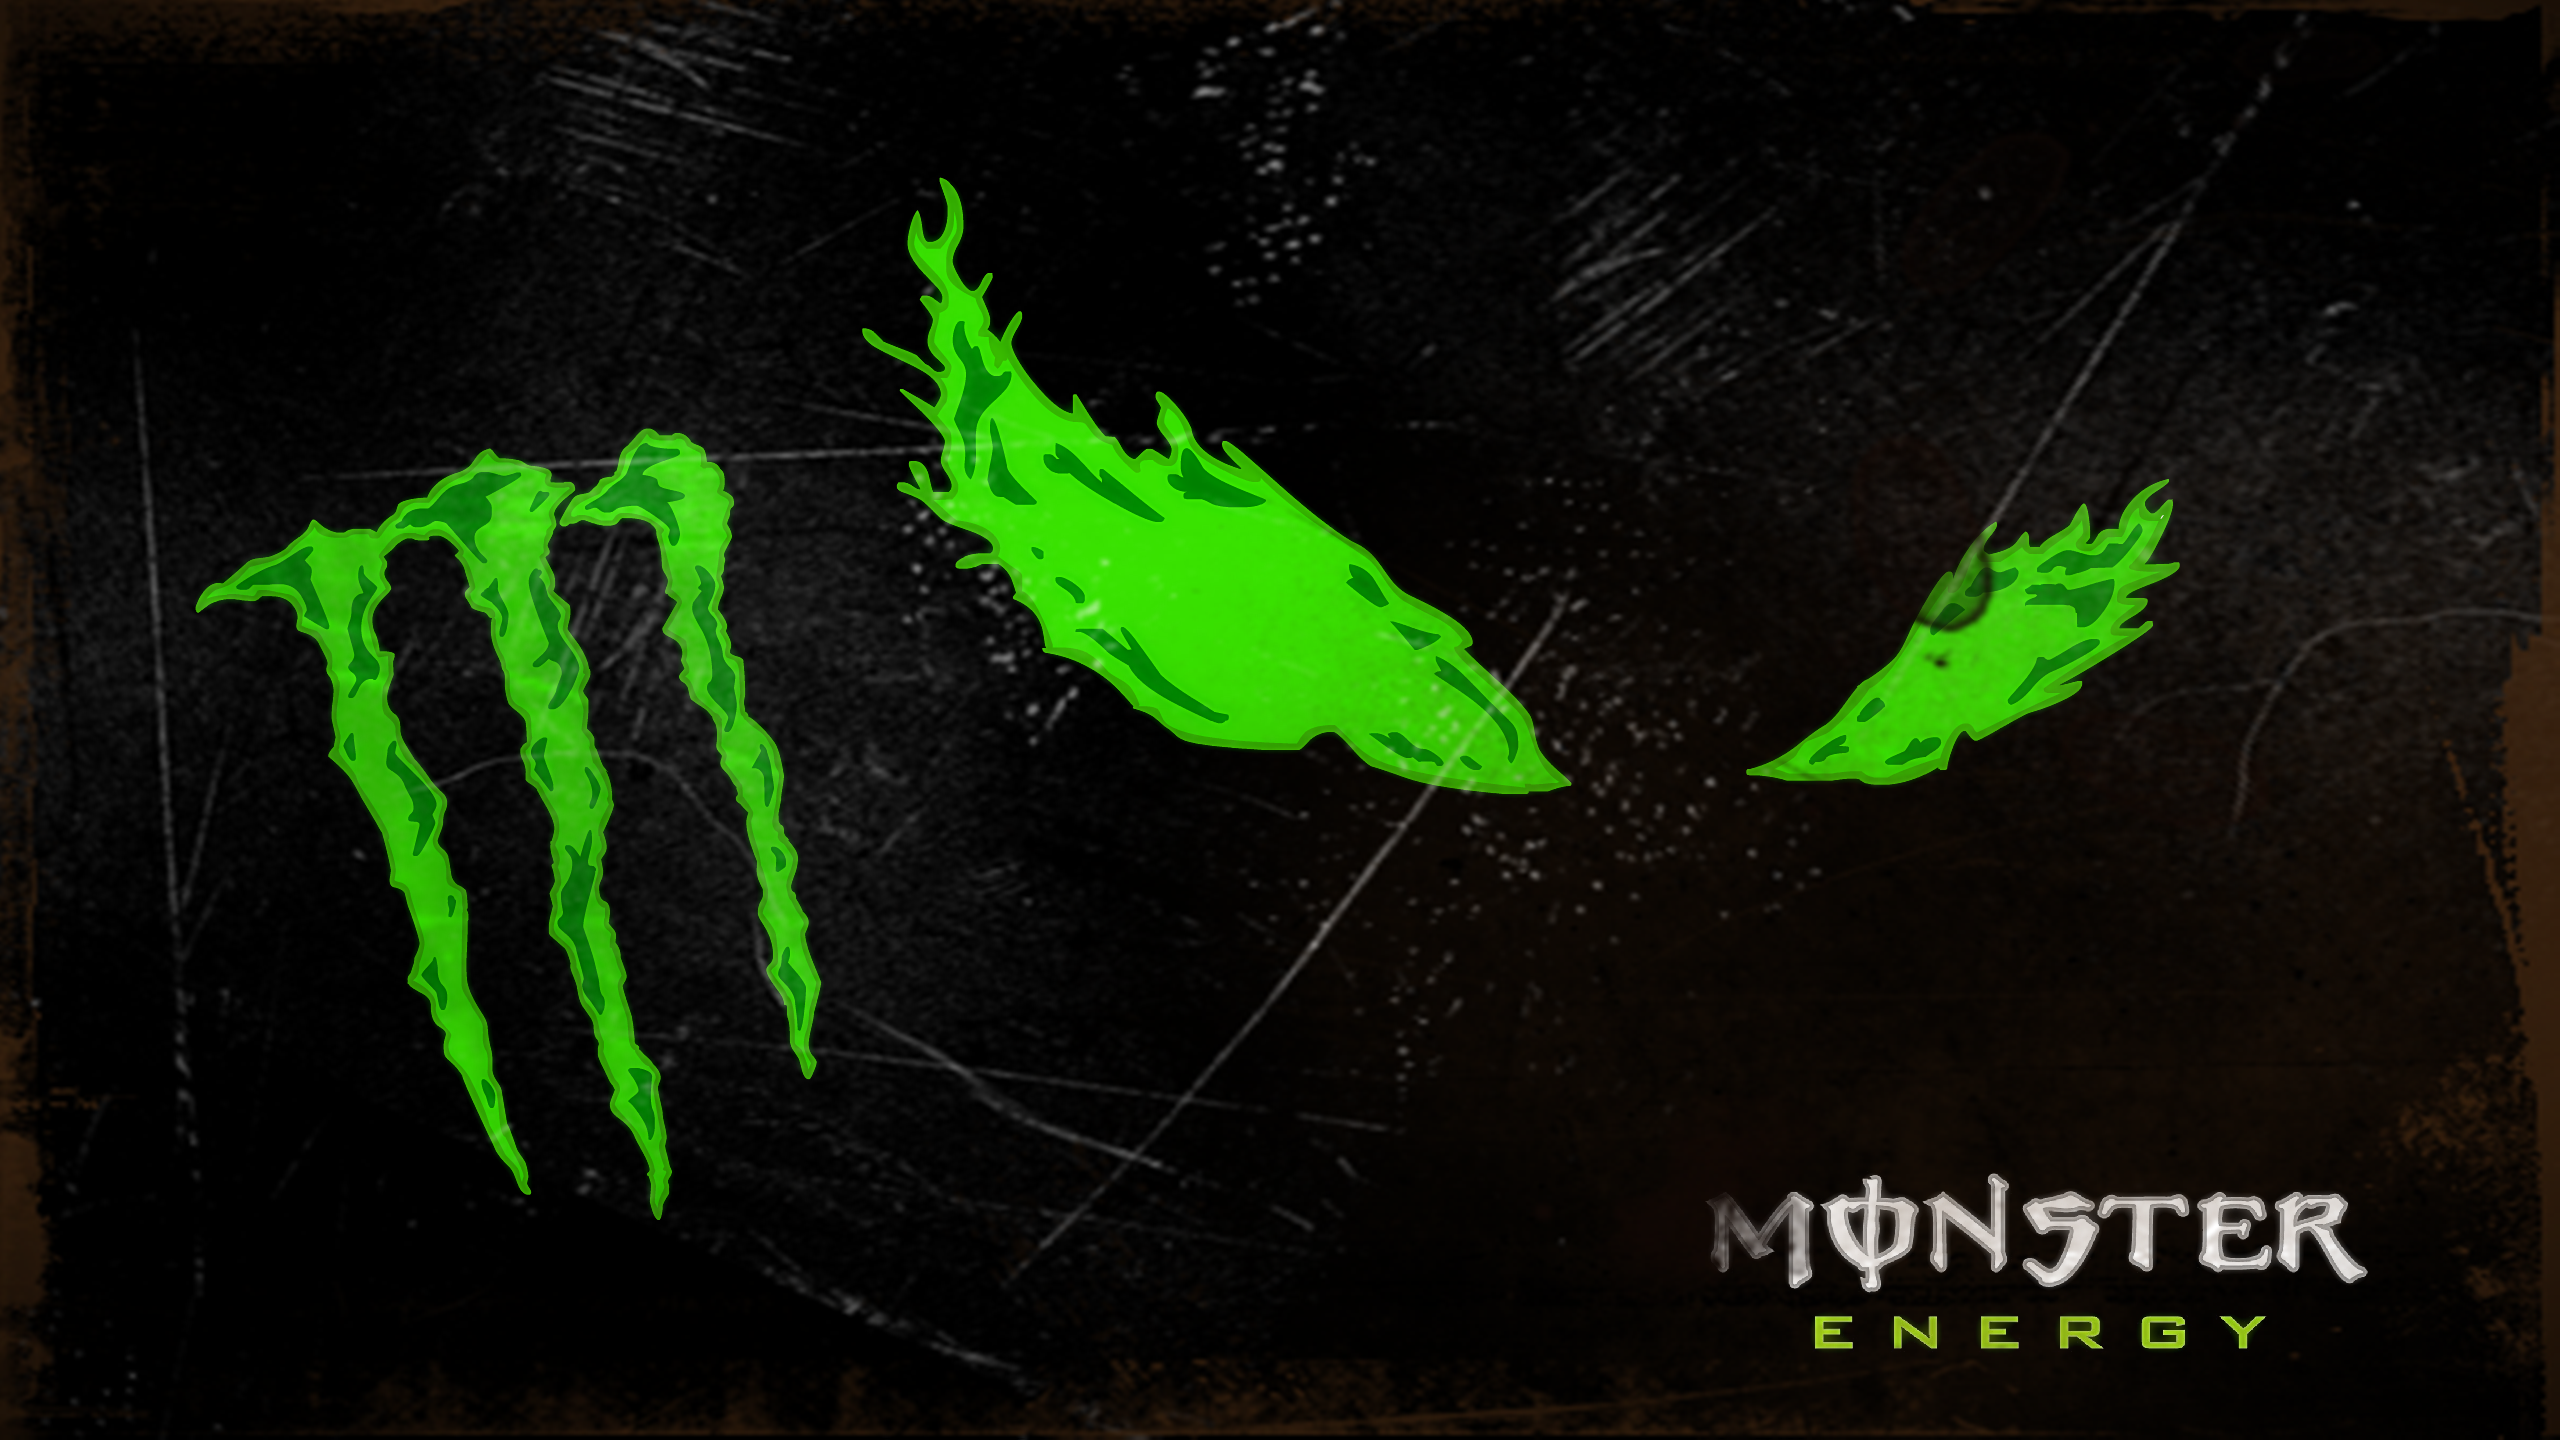 46+] HD Monster Energy Wallpapers on